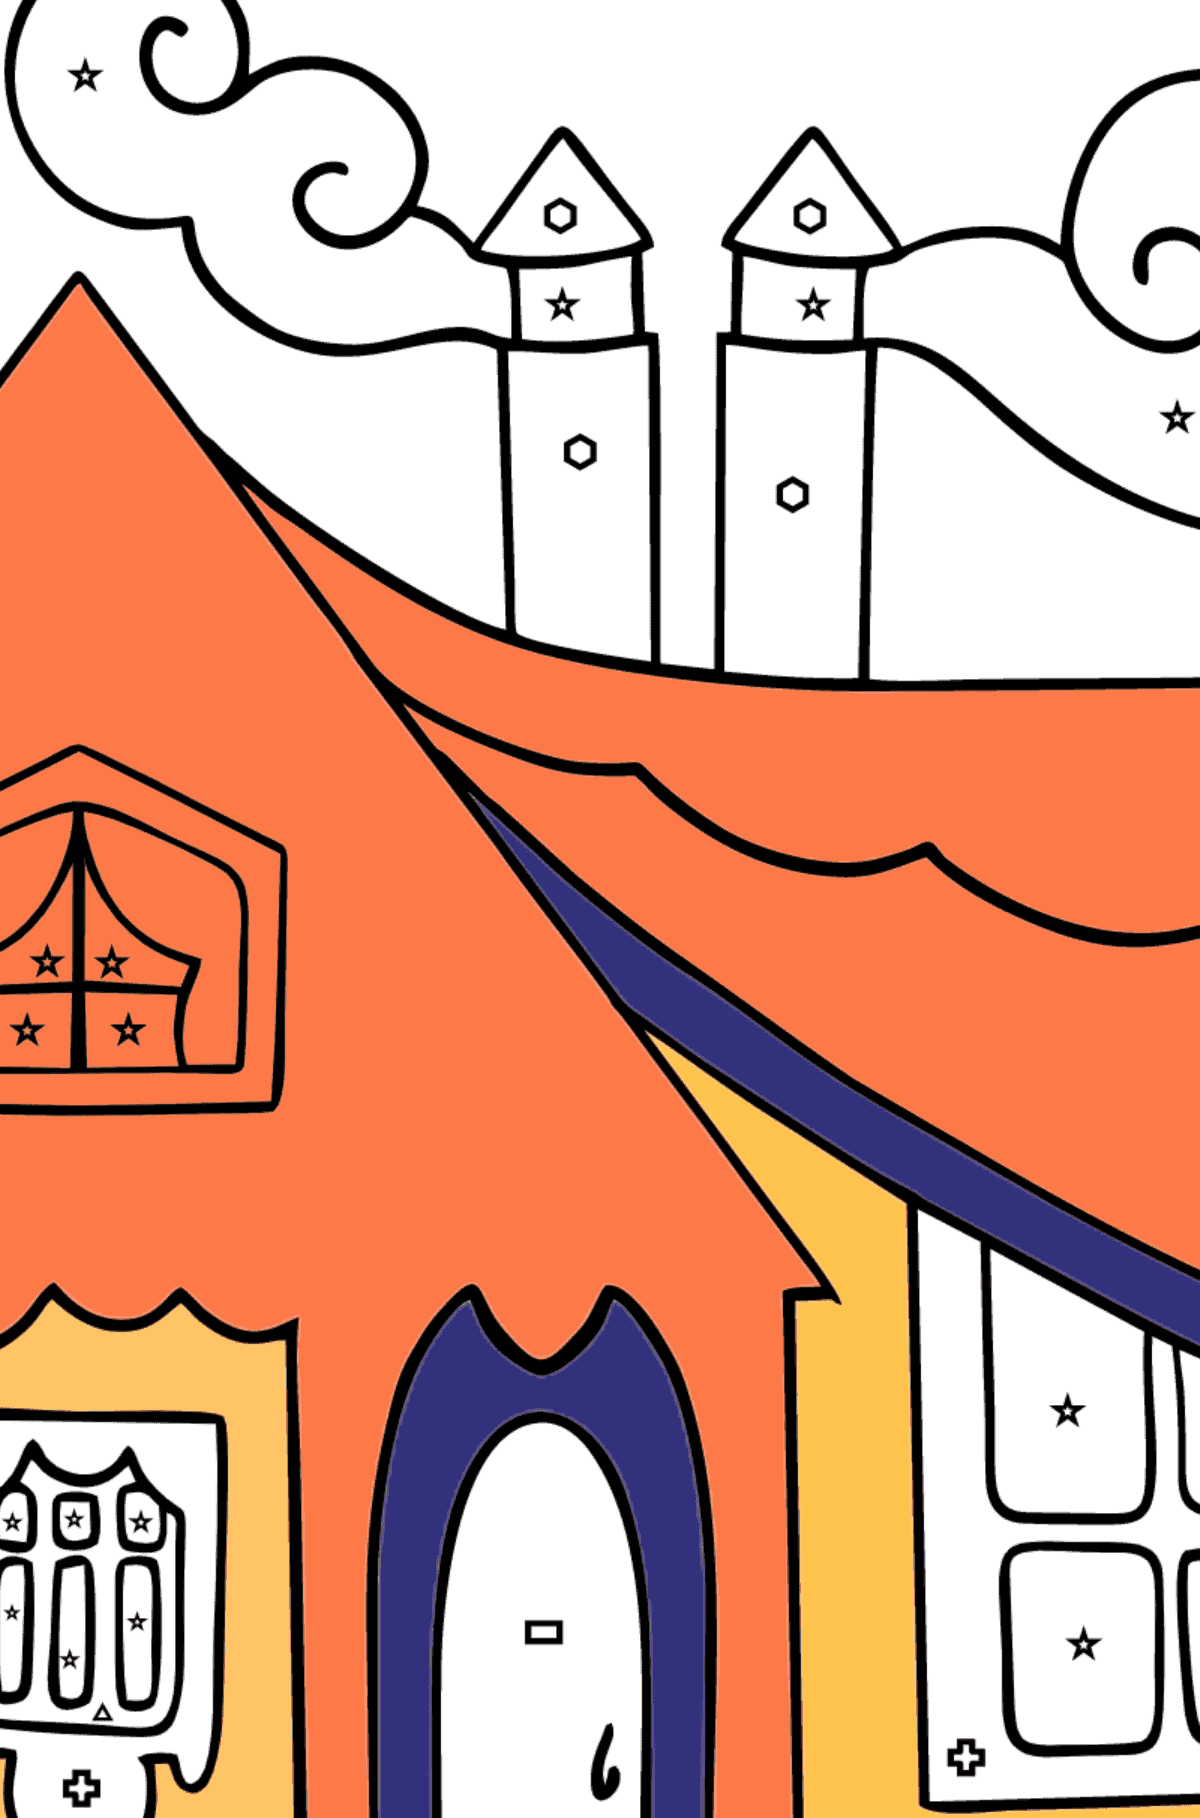 Simple Coloring Page - A Tiny House for Kids  - Color by Geometric Shapes